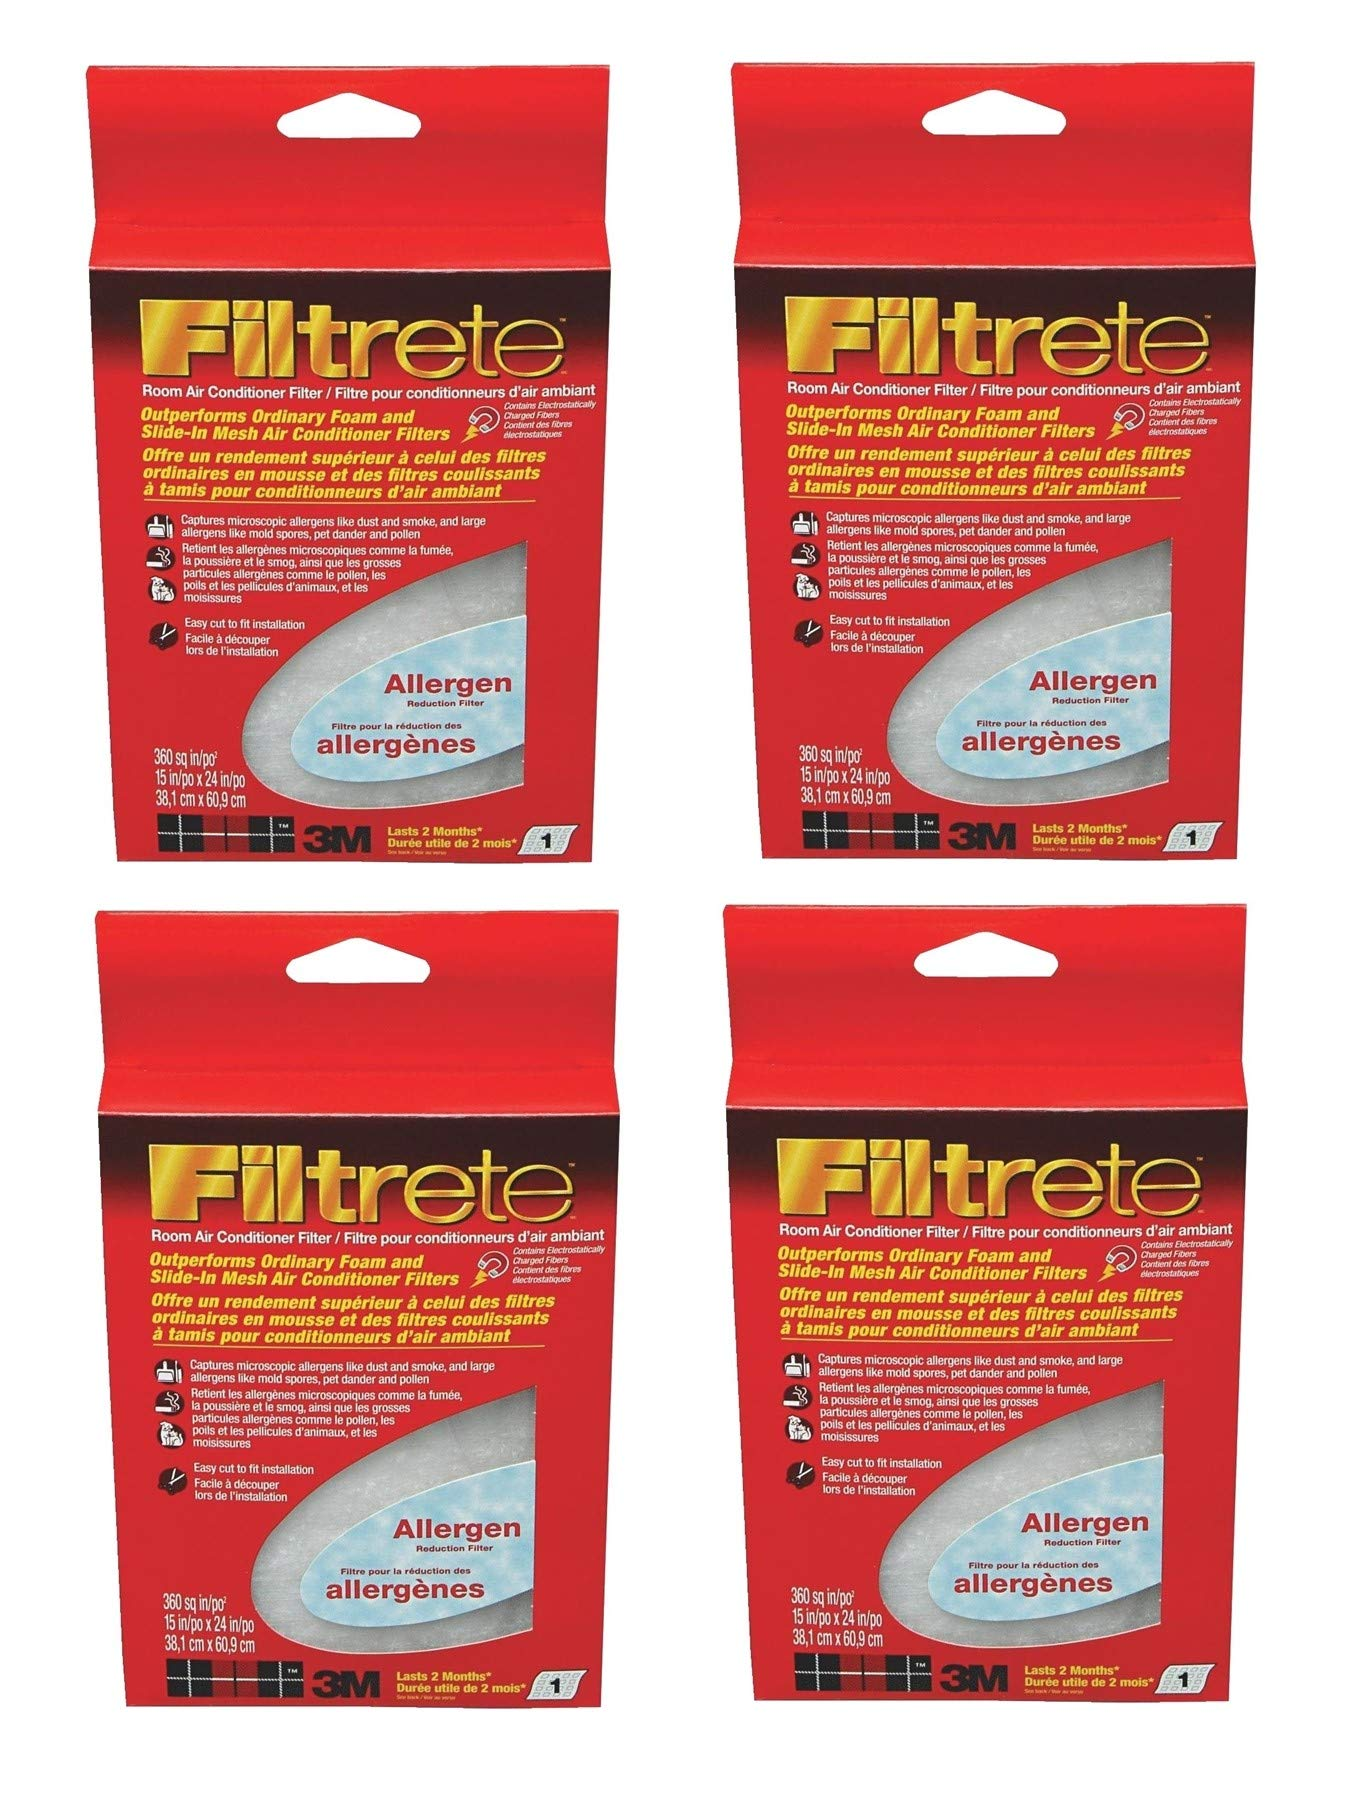 Filtrete 3M Air Conditioner Filter, 15-Inch by 24-Inch (9808), 4 Pack